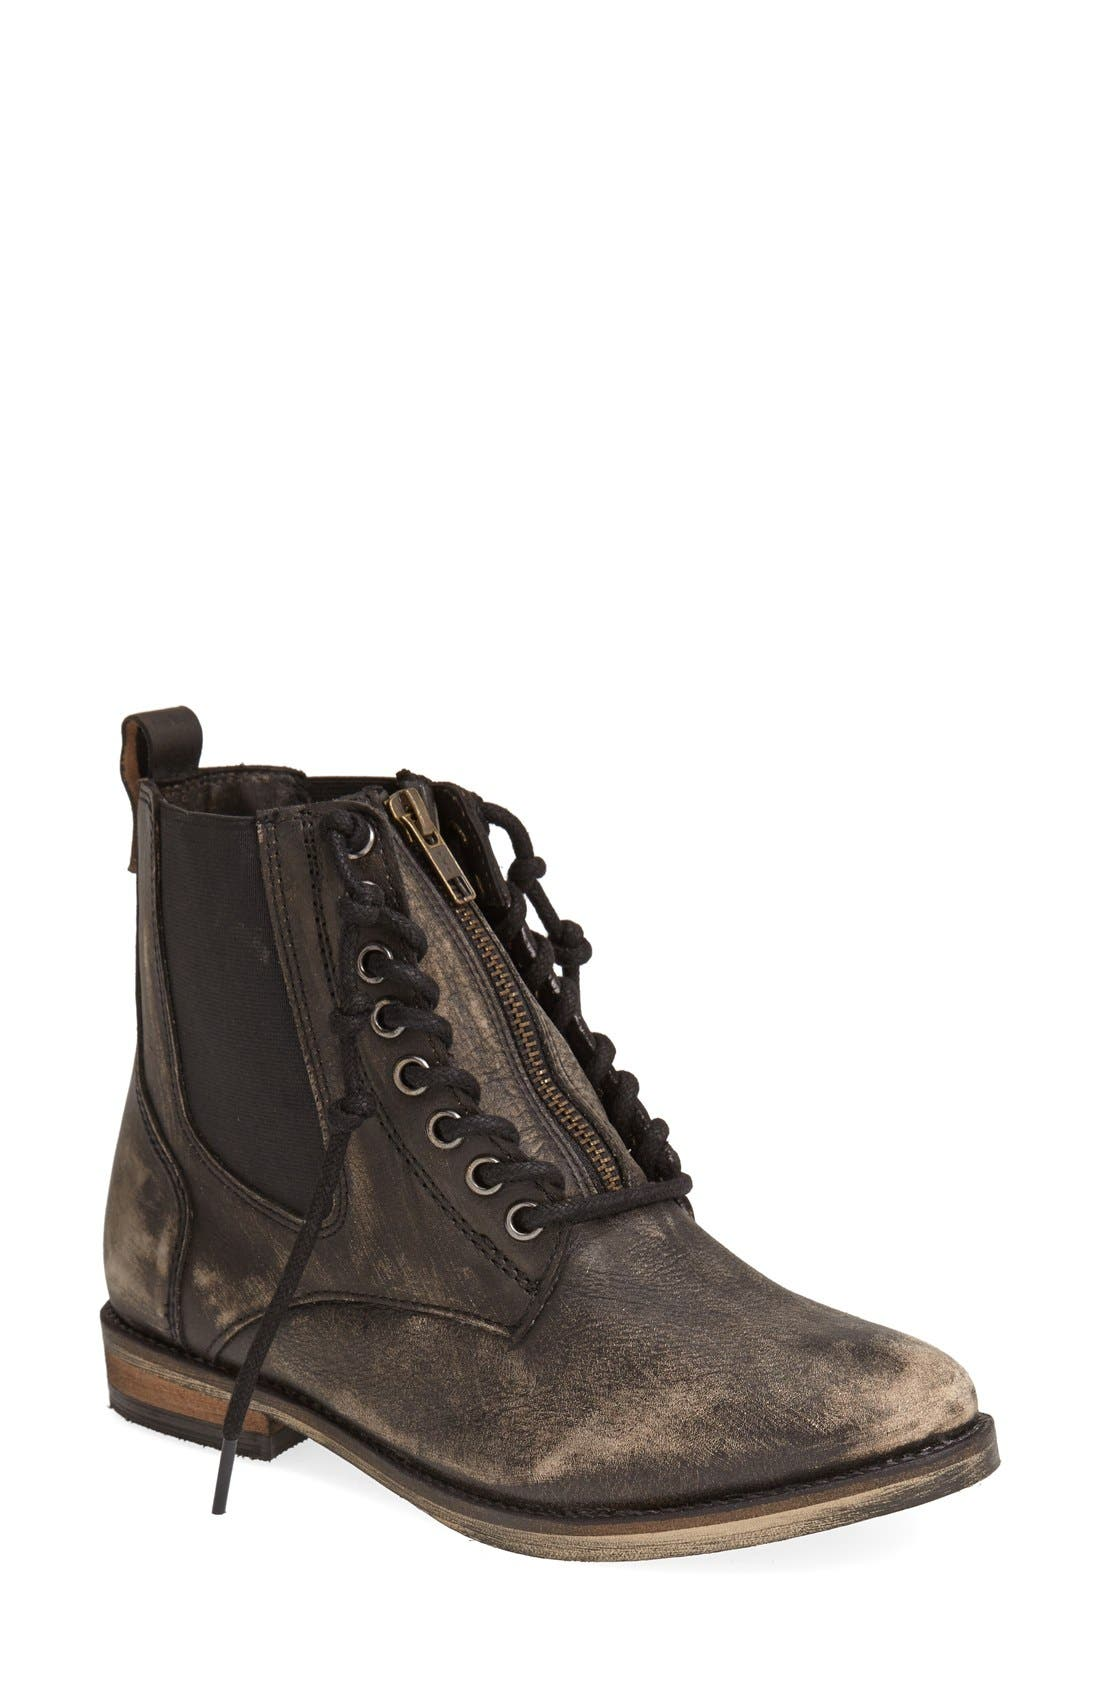 Alternate Image 1 Selected - Naughty Monkey Ankle Boot (Women)